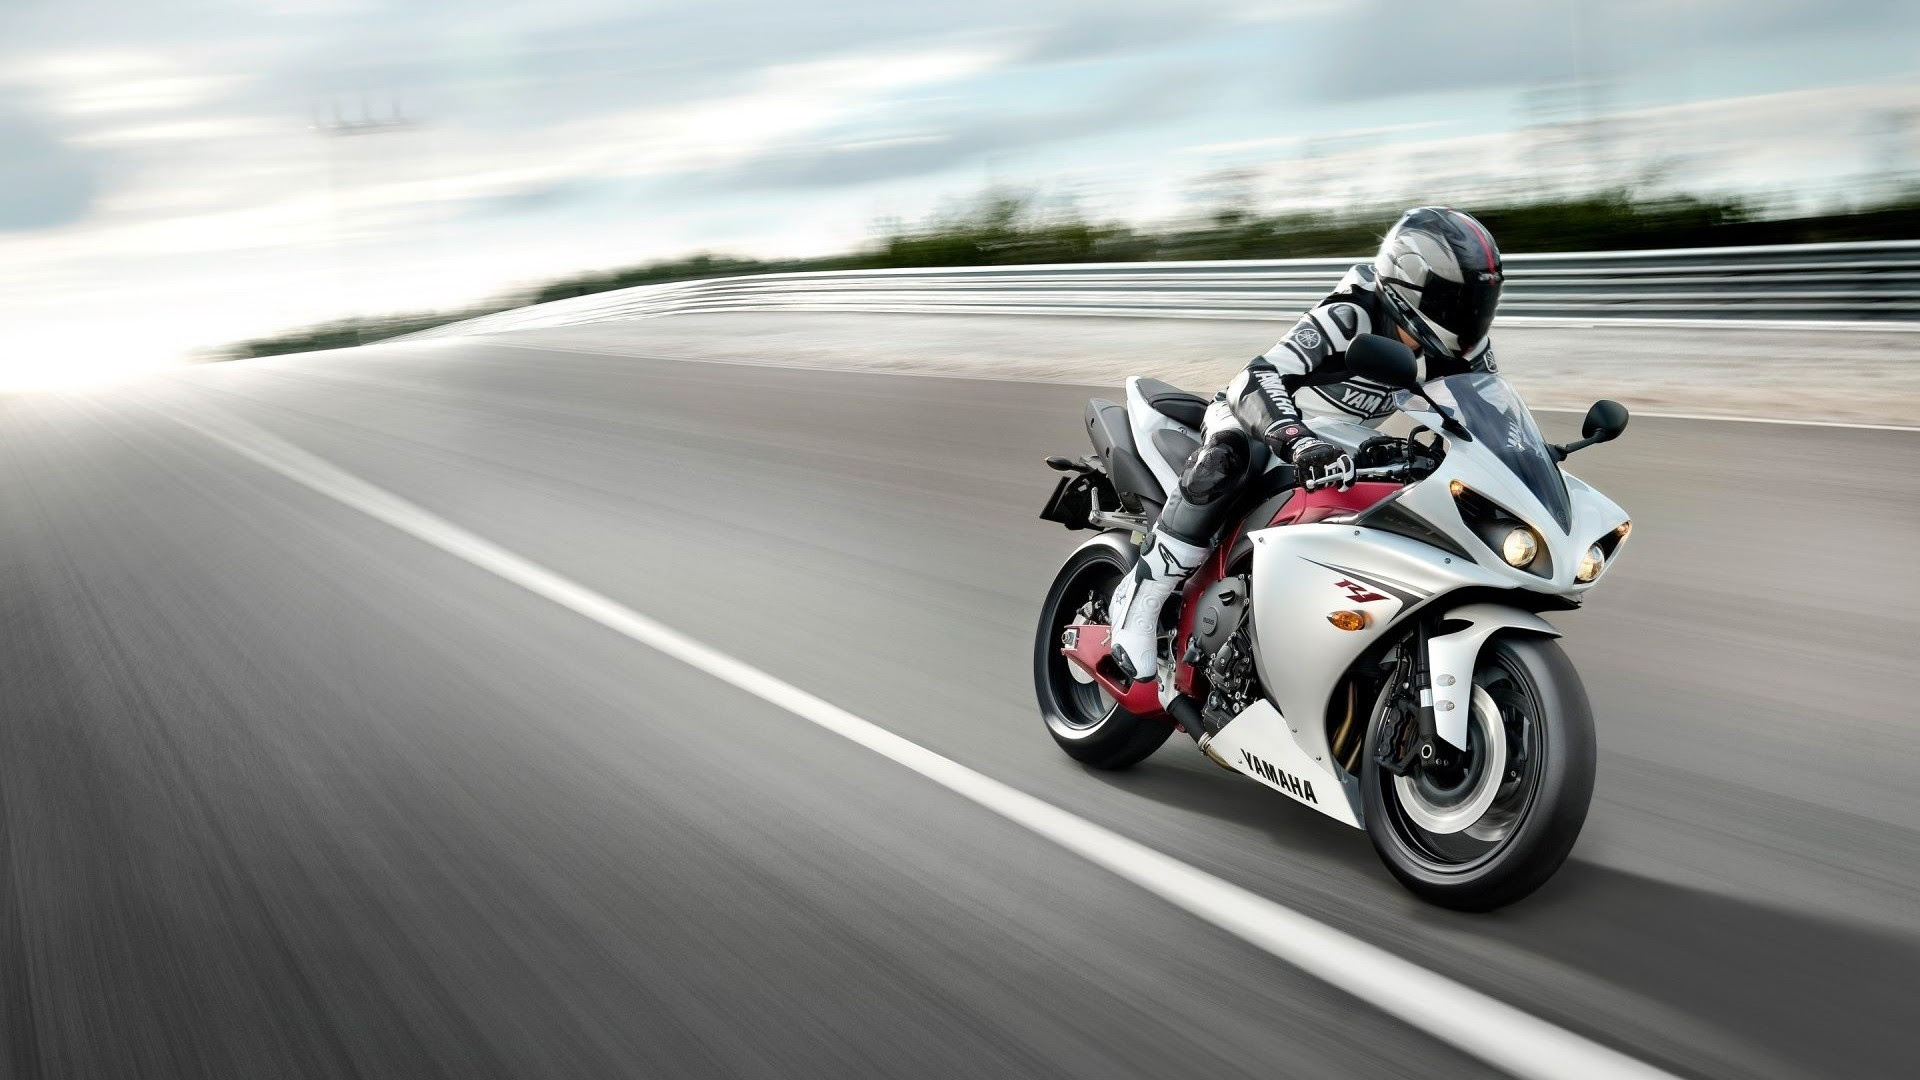 R1 Wallpapers 70 Images Images, Photos, Reviews